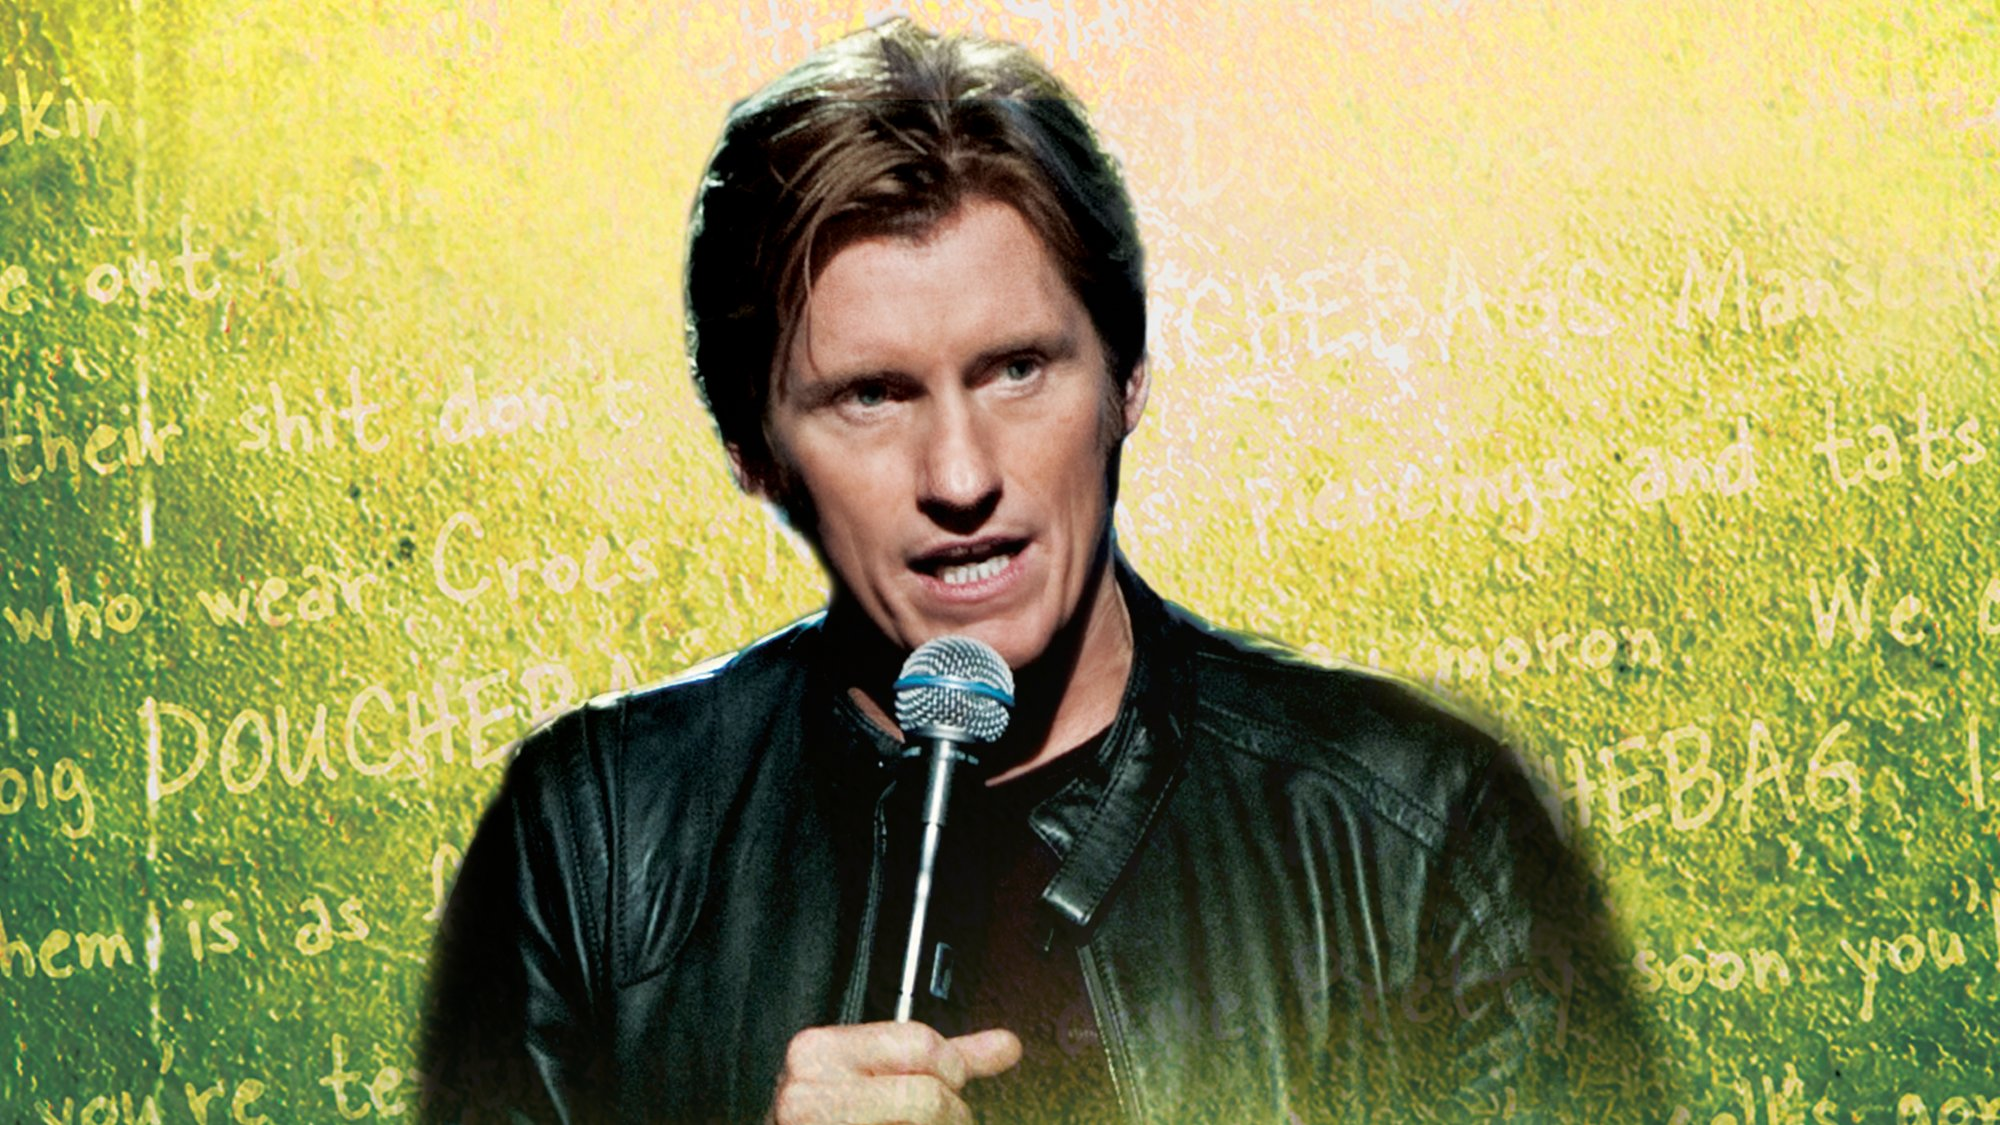 Denis Leary and Friends: Douchebags and Donuts